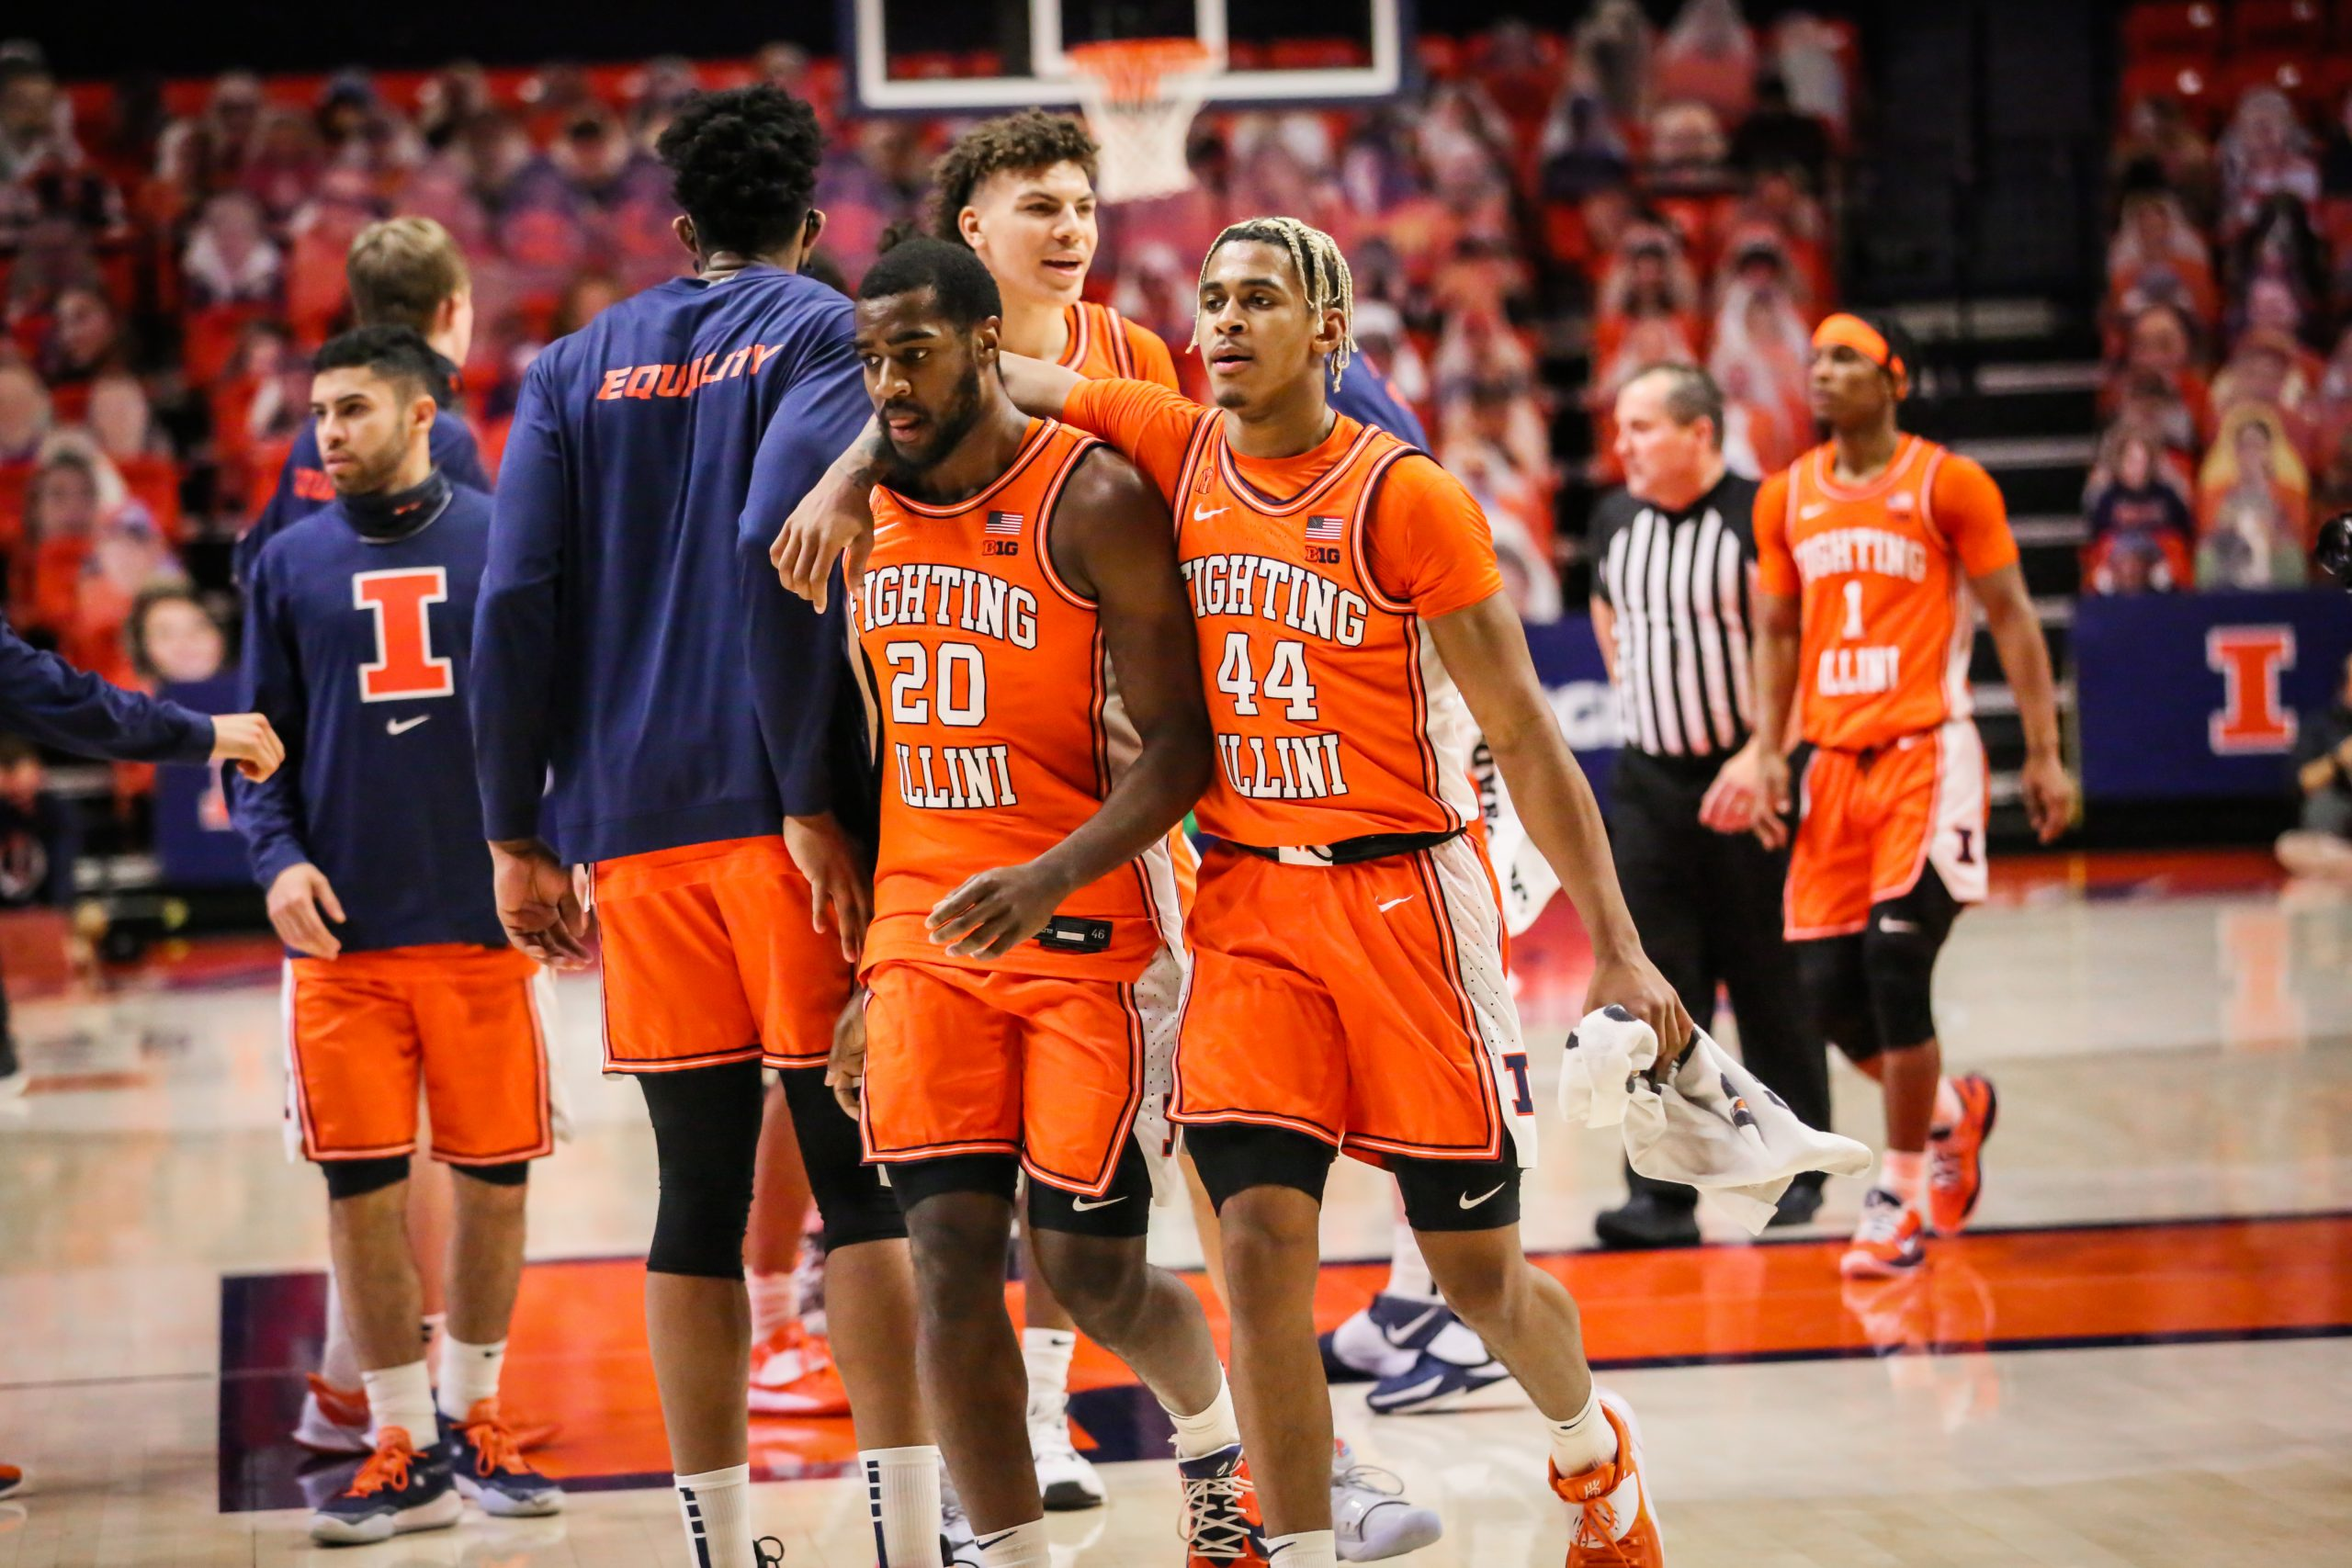 5th ranked Illini hold off Wildcats rally to win 6th straight, 73-66